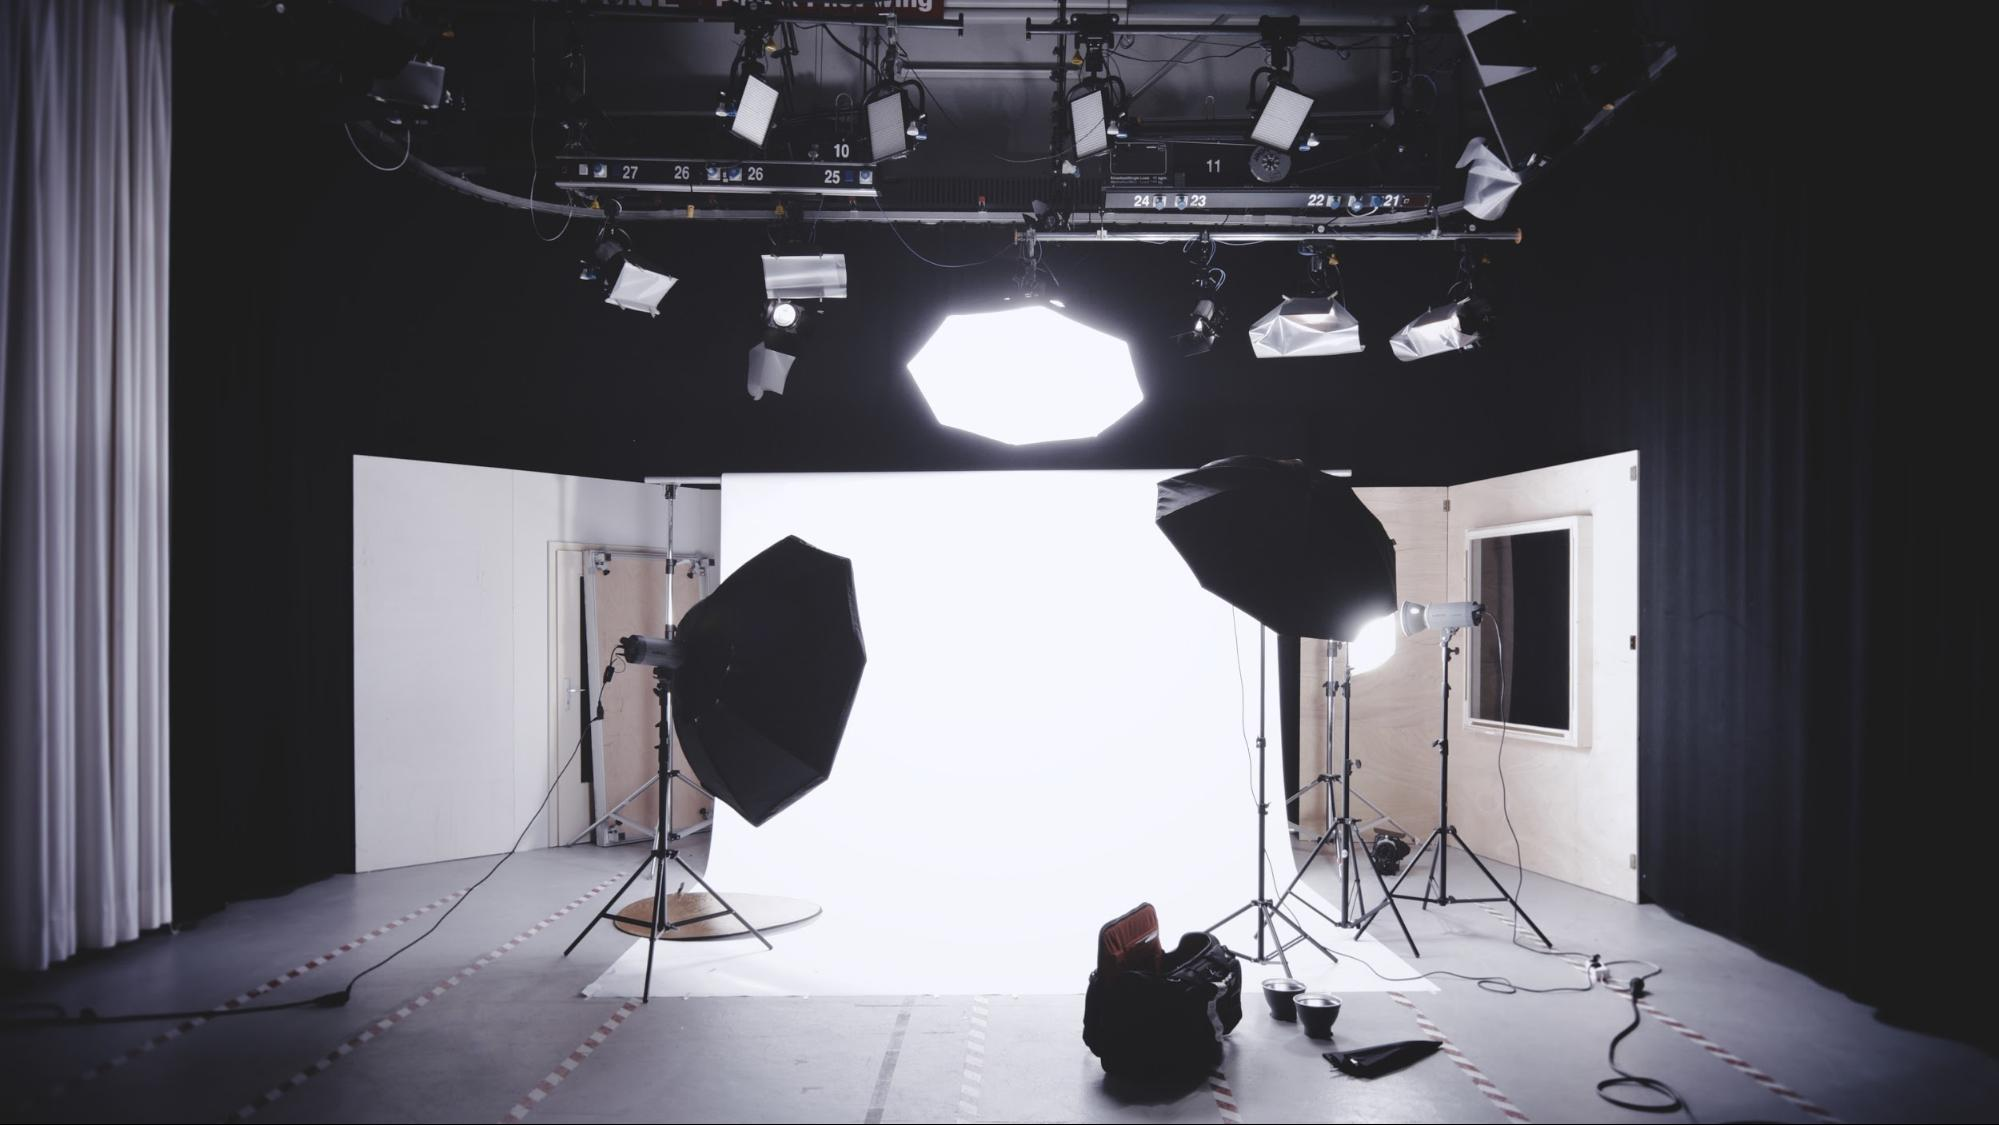 Professional light reflecting equipment in a studio